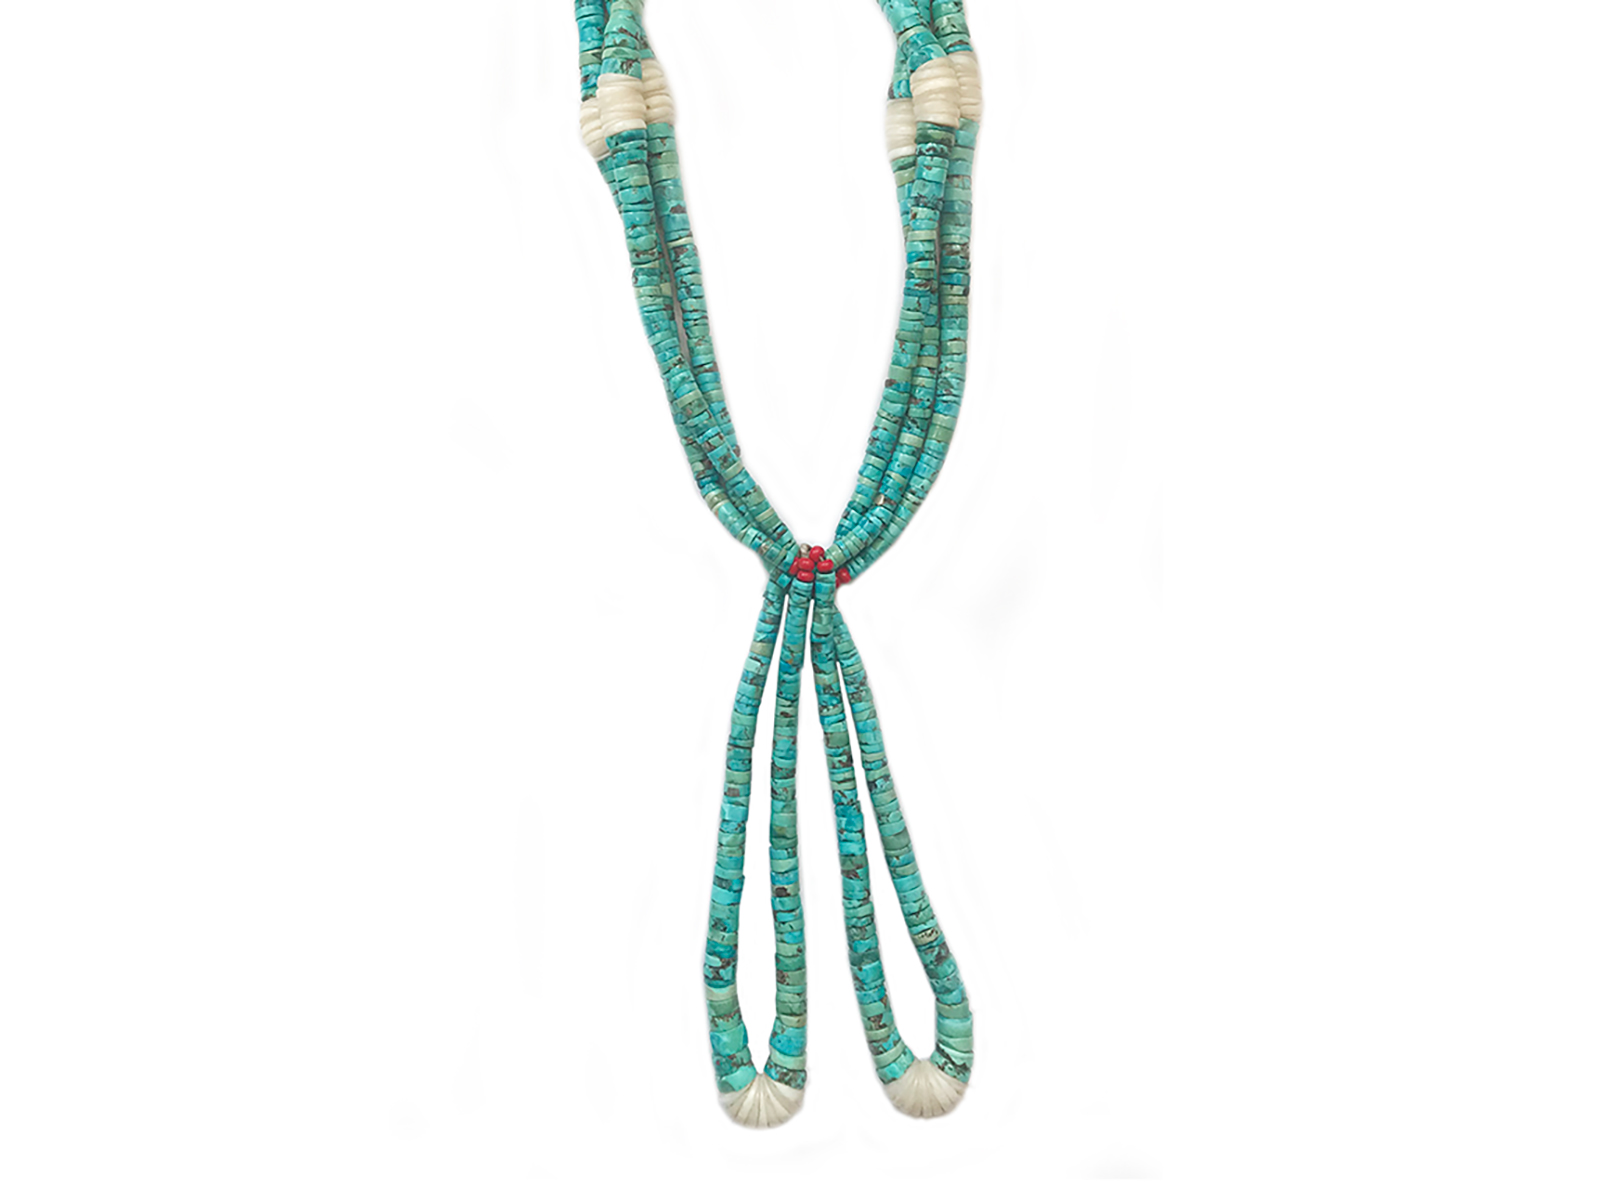 1950's Natural Turquoise Ceremonial Necklace